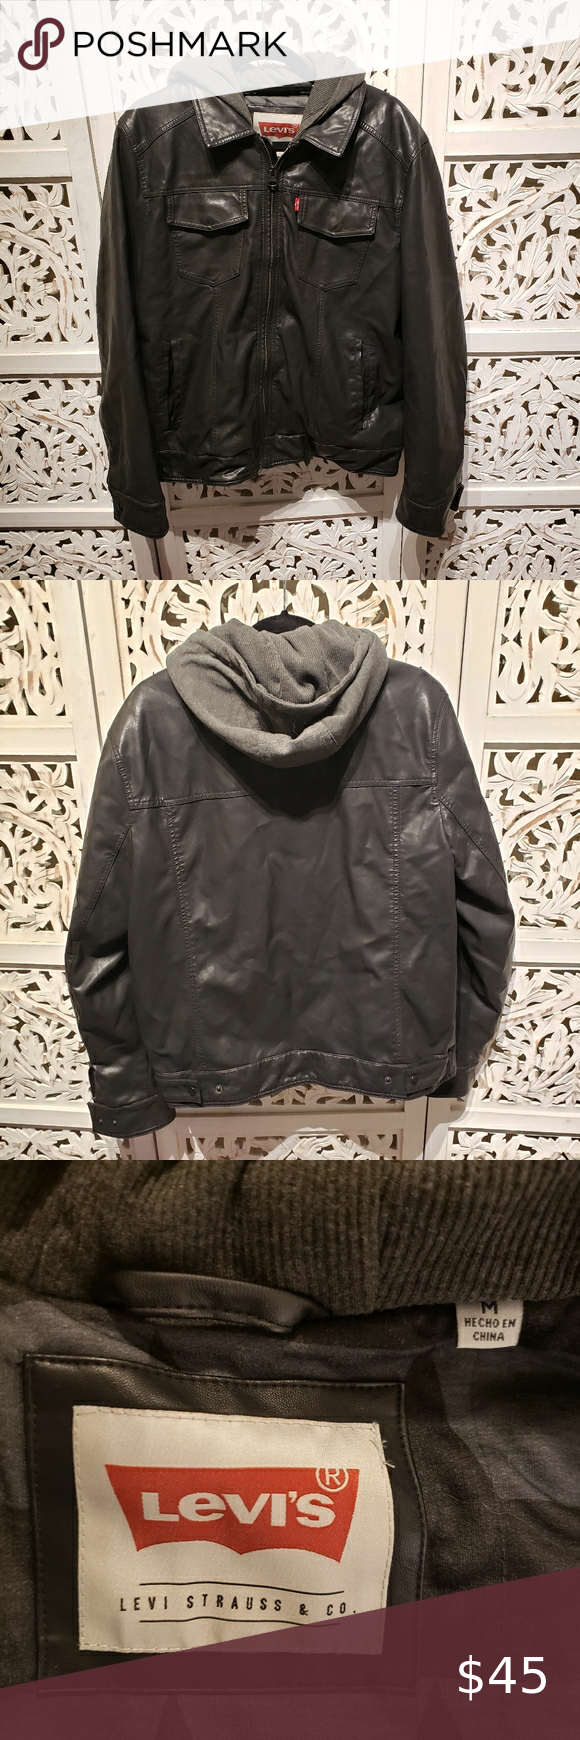 Levi's Black and Gray Faux Leather Jacket in 2020